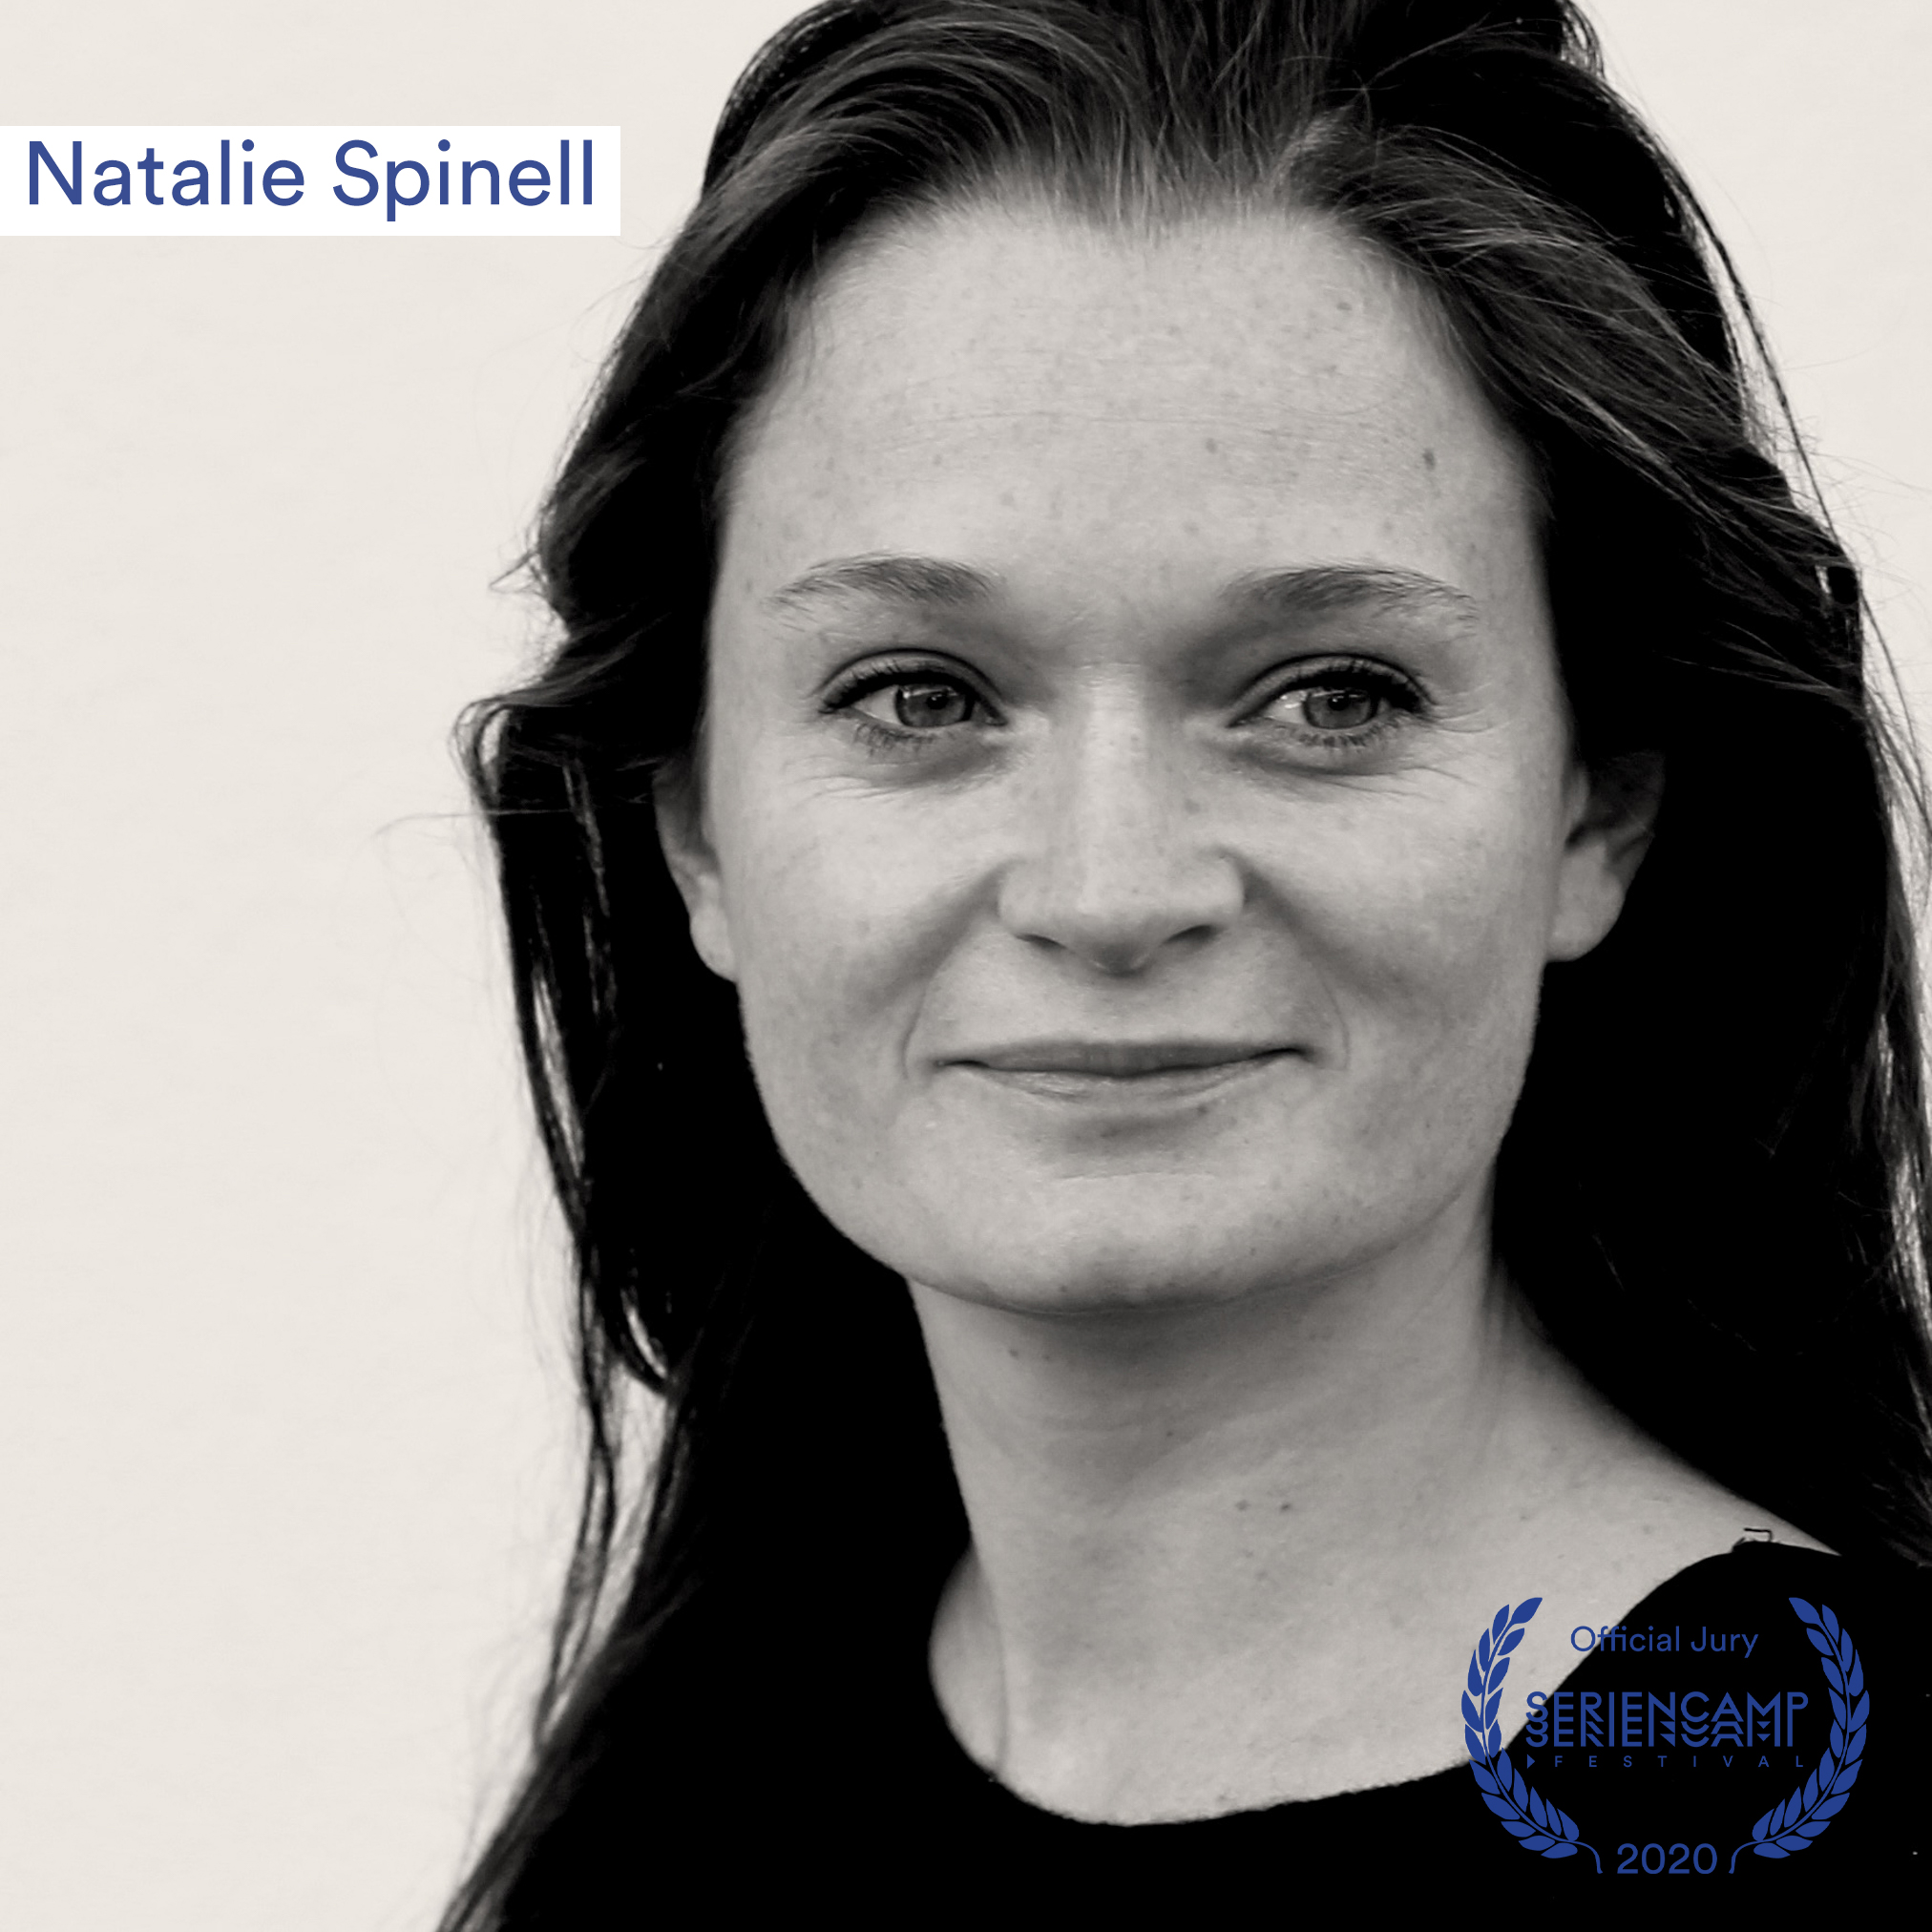 Official Competition 2020: Natalie Spinell